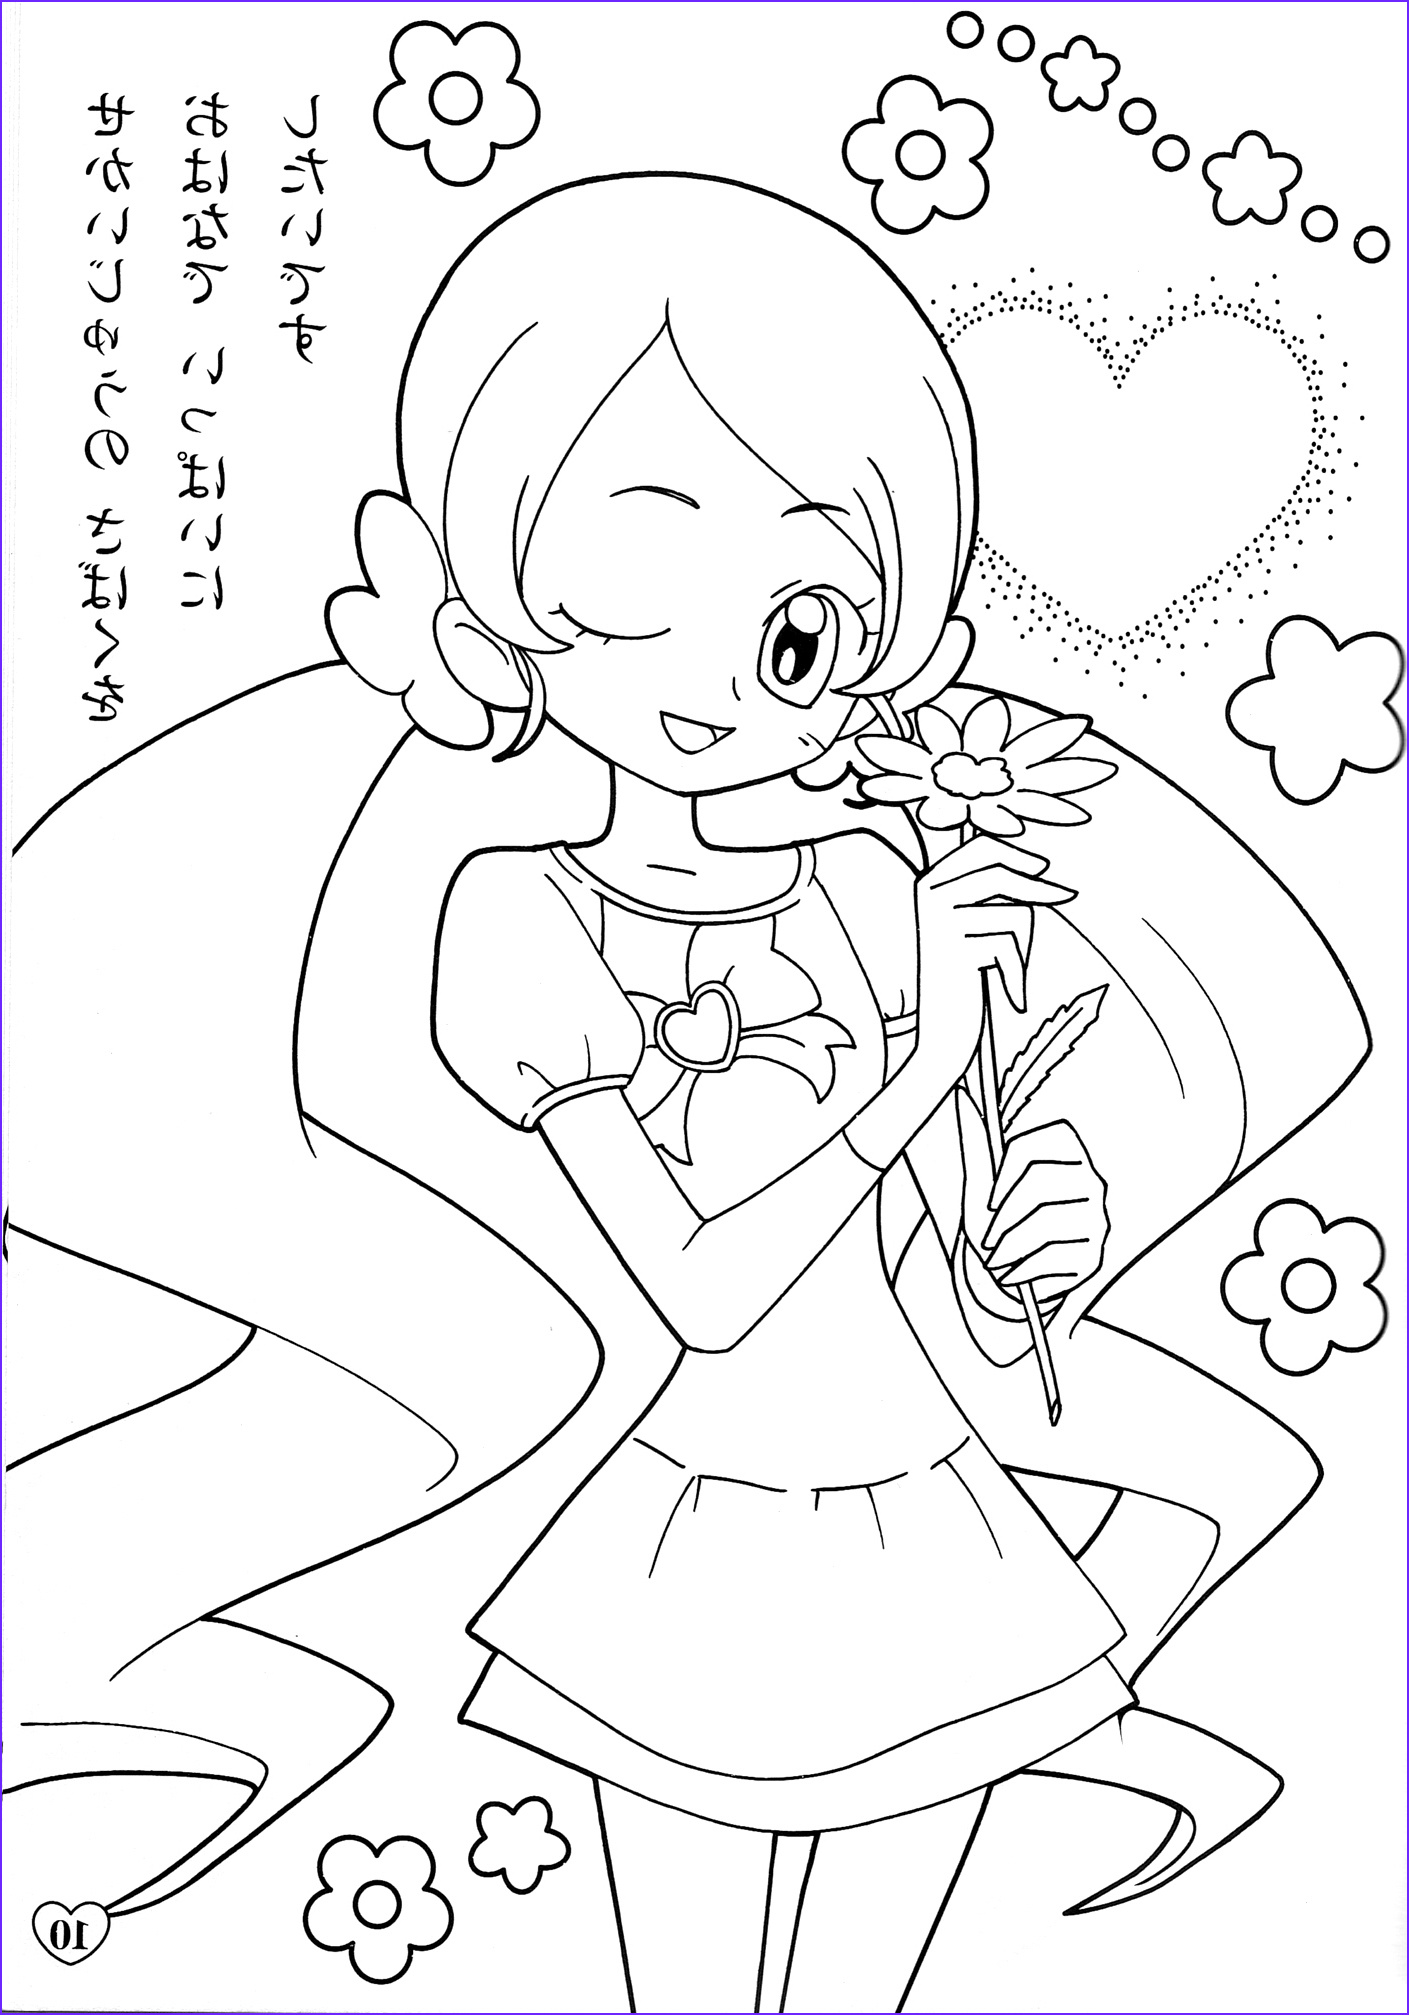 Precure Coloring Page Cool Stock Yes Precure 5 Coloring Pages Coloring Pages